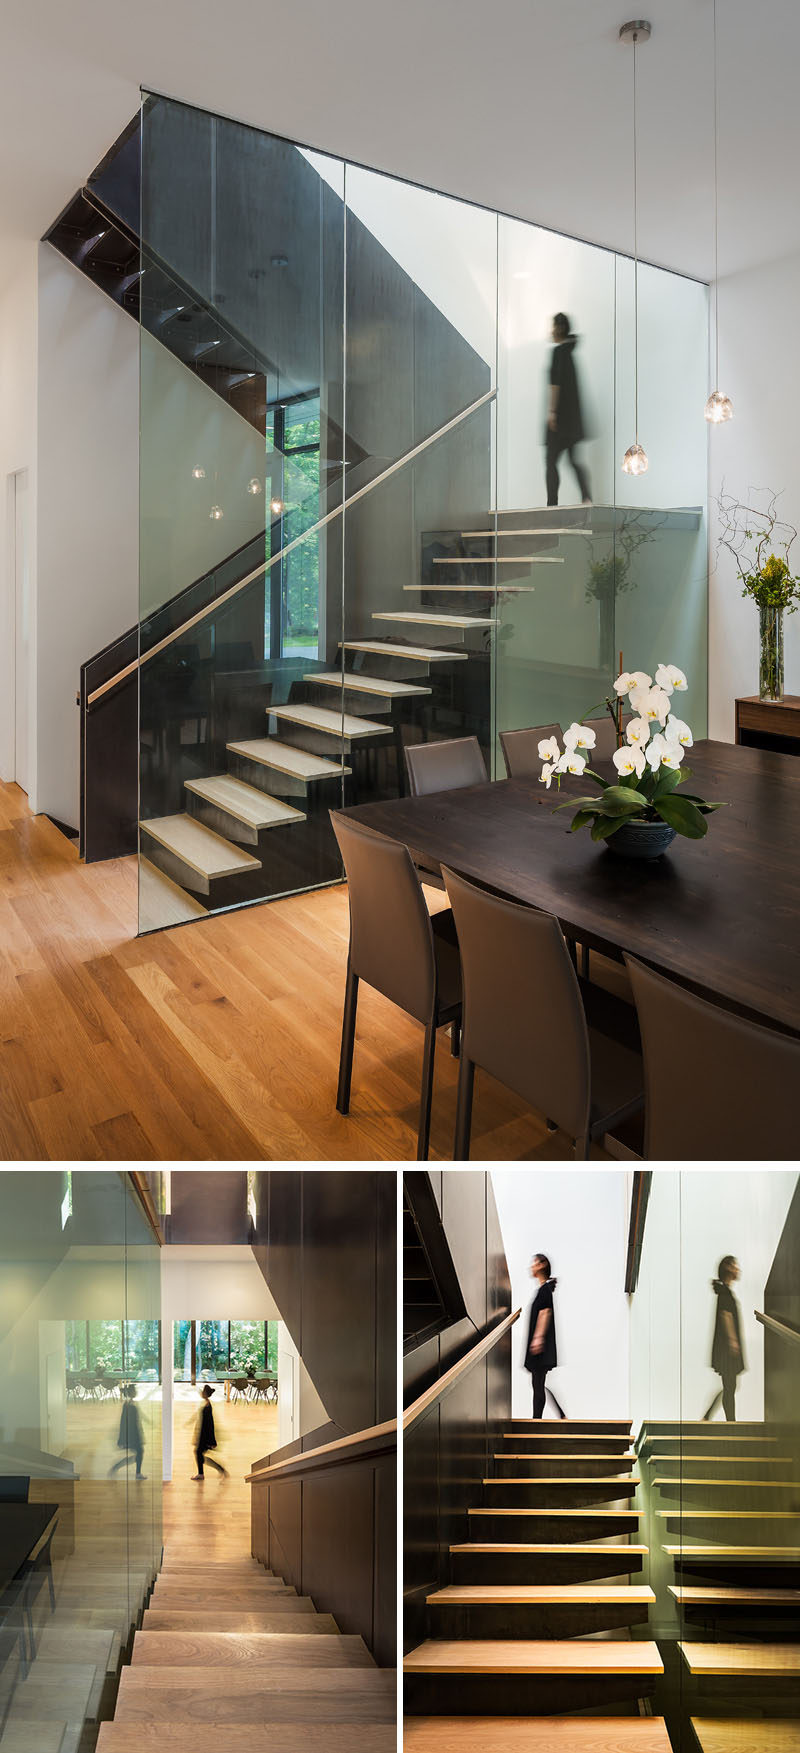 A staircase fabricated from wood and hot-rolled steel leads to the second floor of this modern house. #Stairs #Staircase #SteelStairs